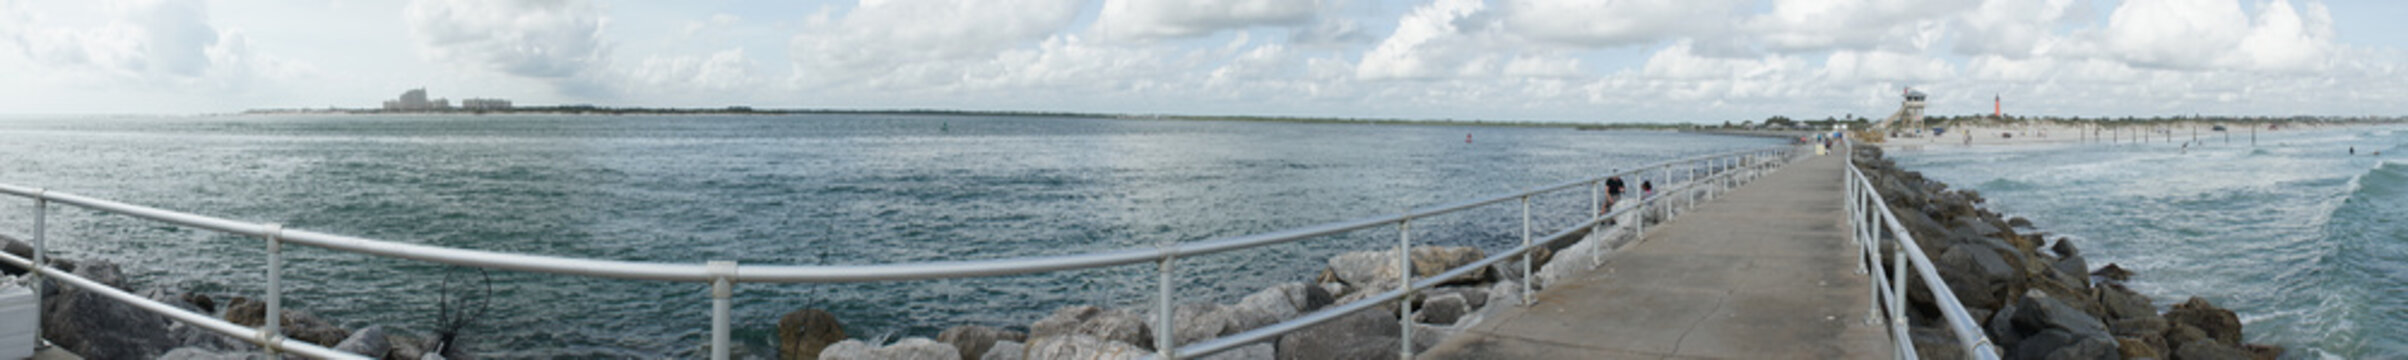 Beautiful beach and the Atlanitic ocean at Ponce Point